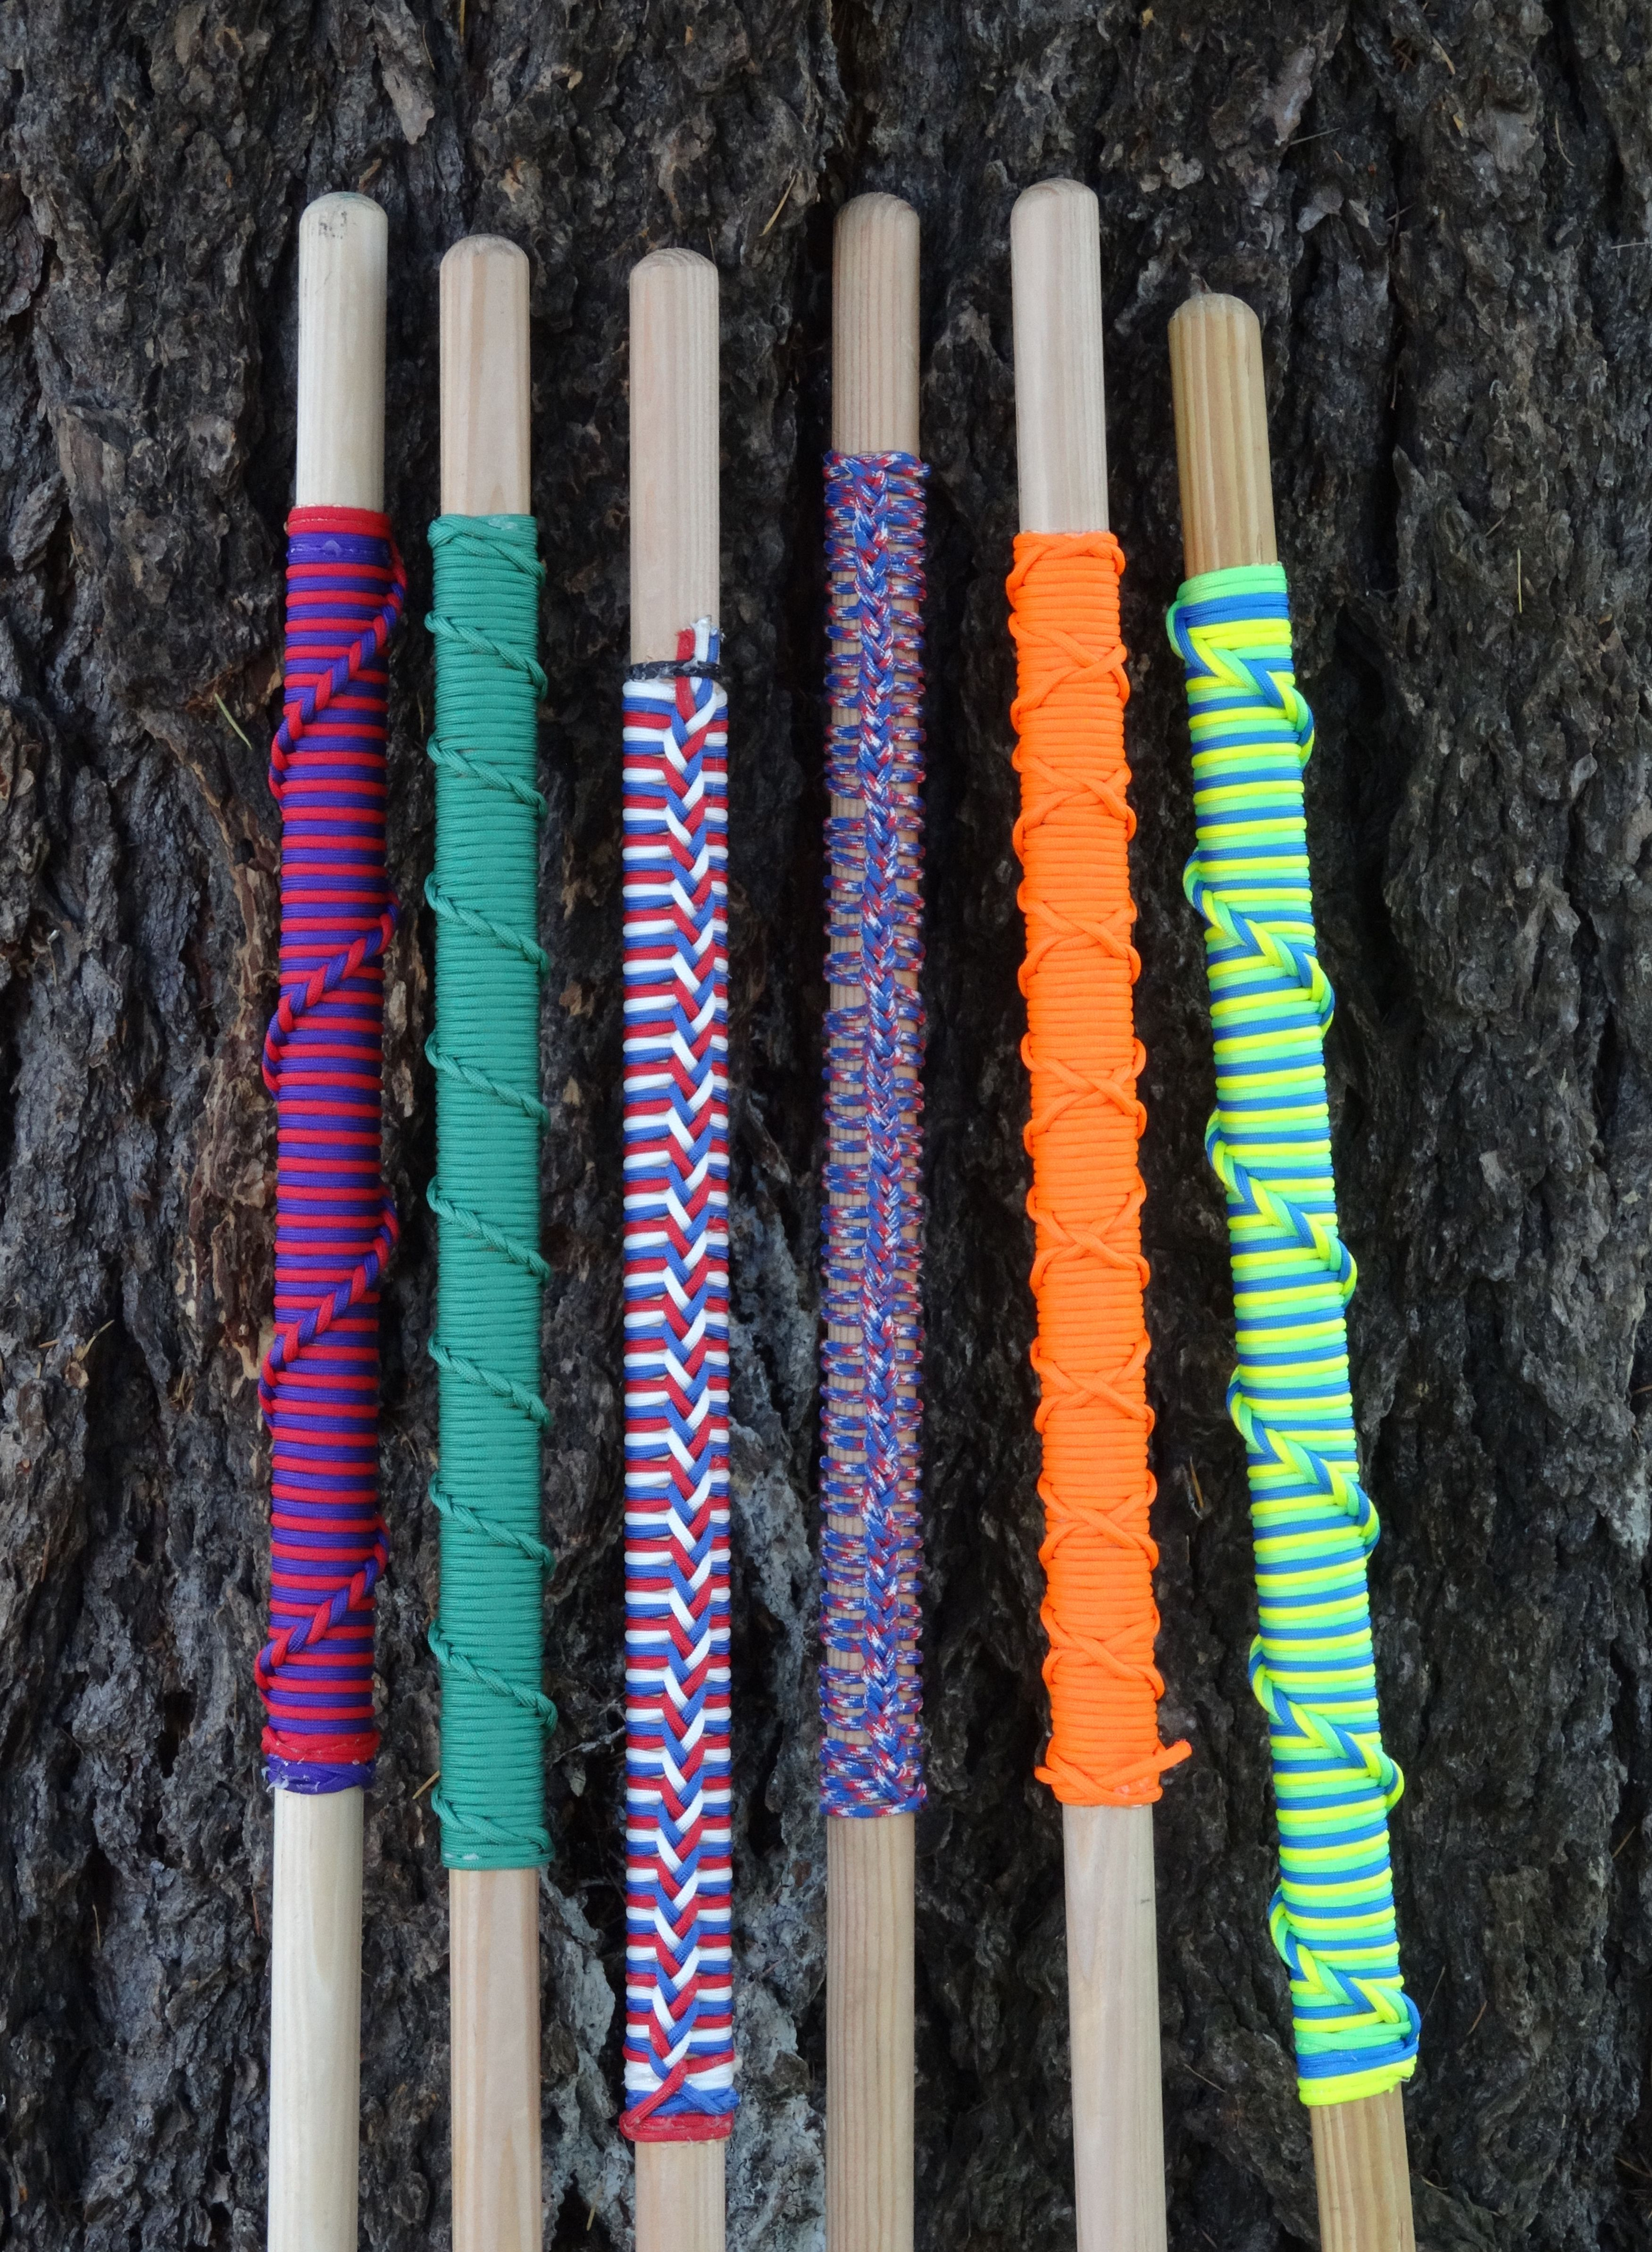 Assorted Hiking Staffs Using Paracord All Have